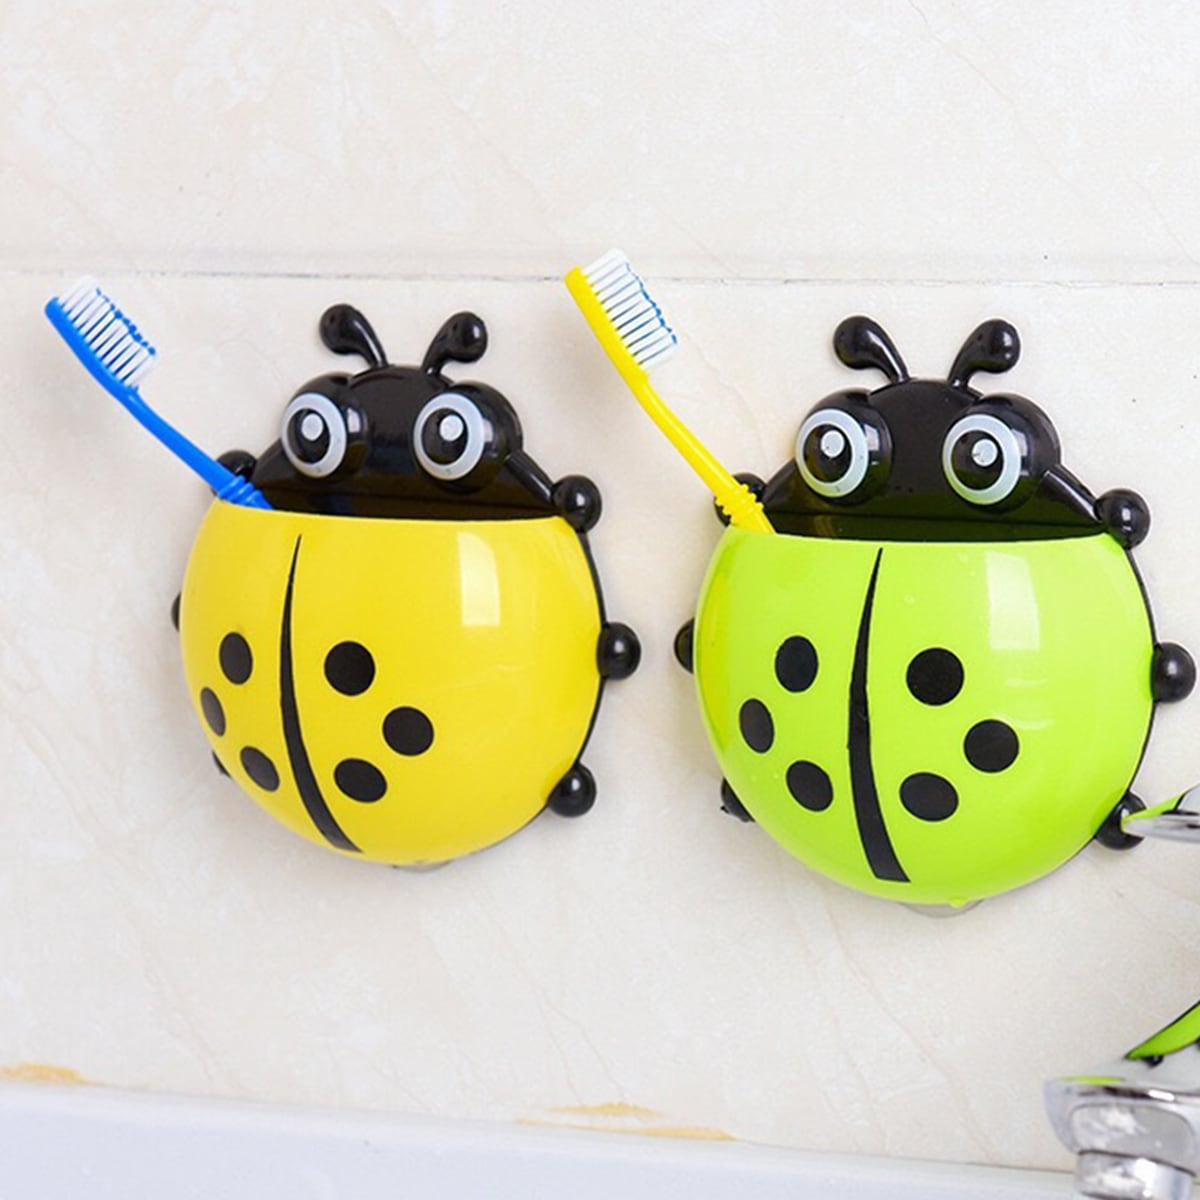 1pc Ladybug Shaped Random Color Toothbrush Holder, SHEIN  - buy with discount